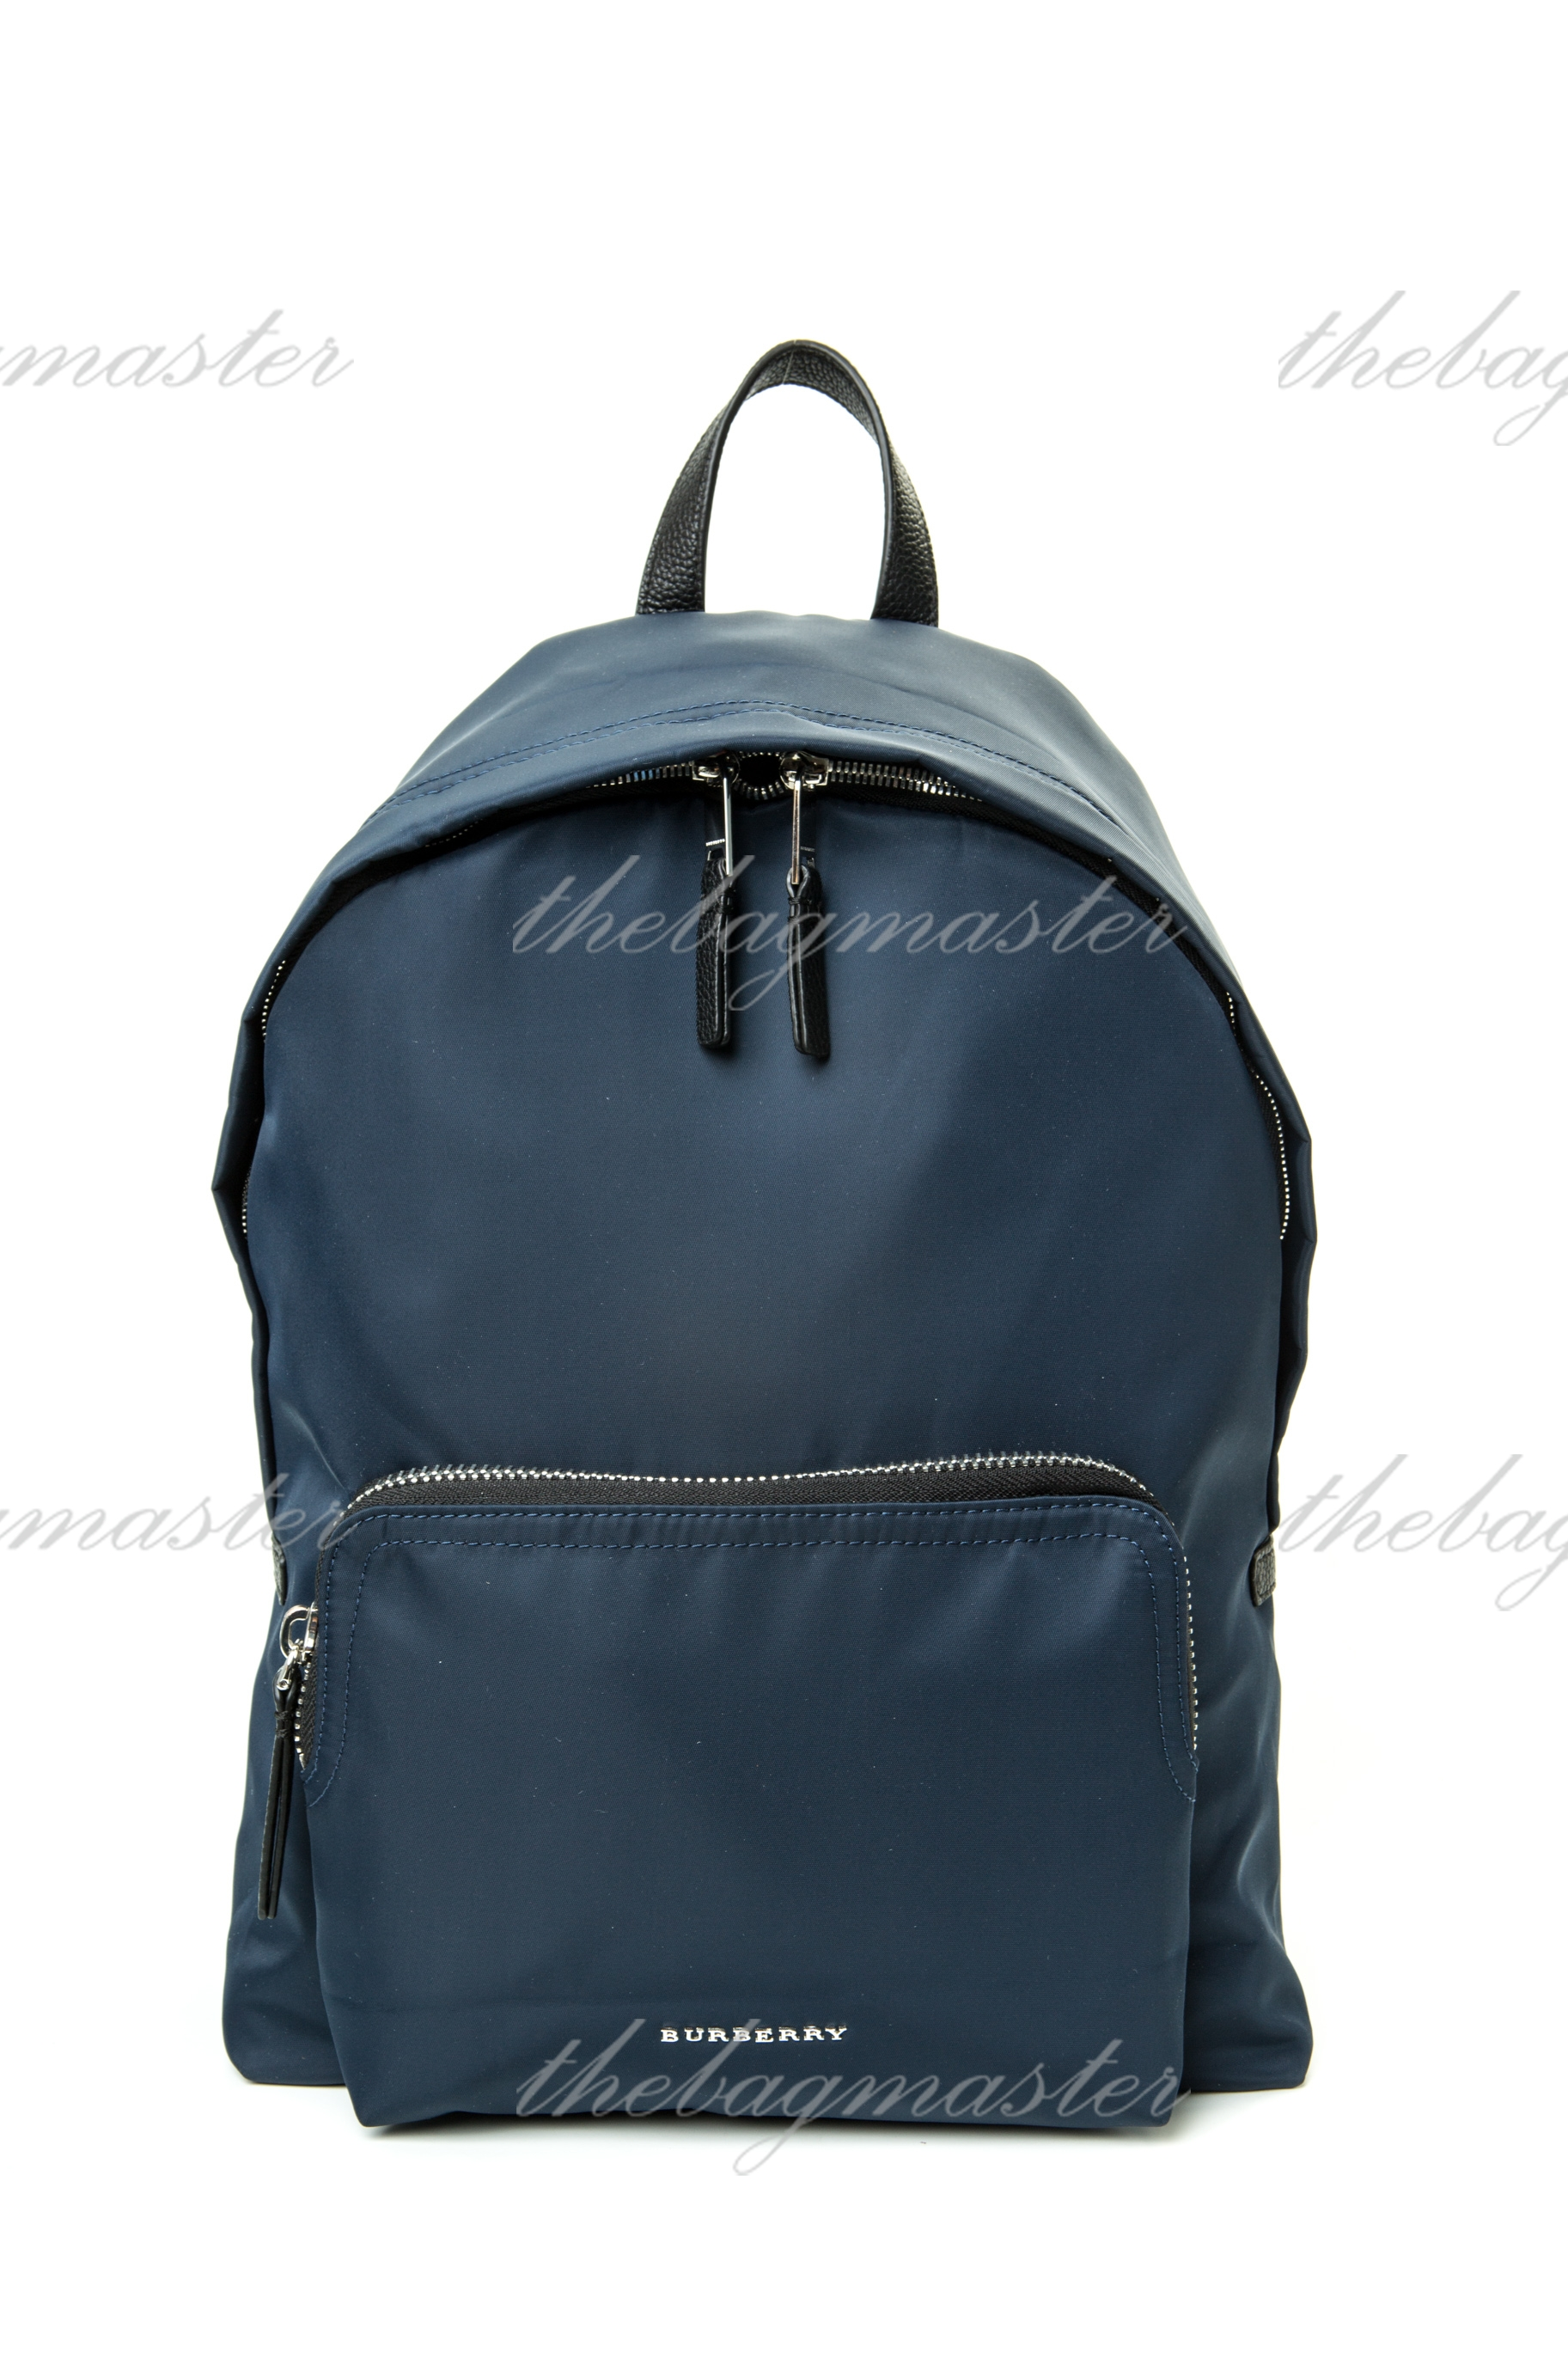 eb9aef9dc384b Burberry  Abbeydale  Check Nylon Backpack - Navy Blue — The ...